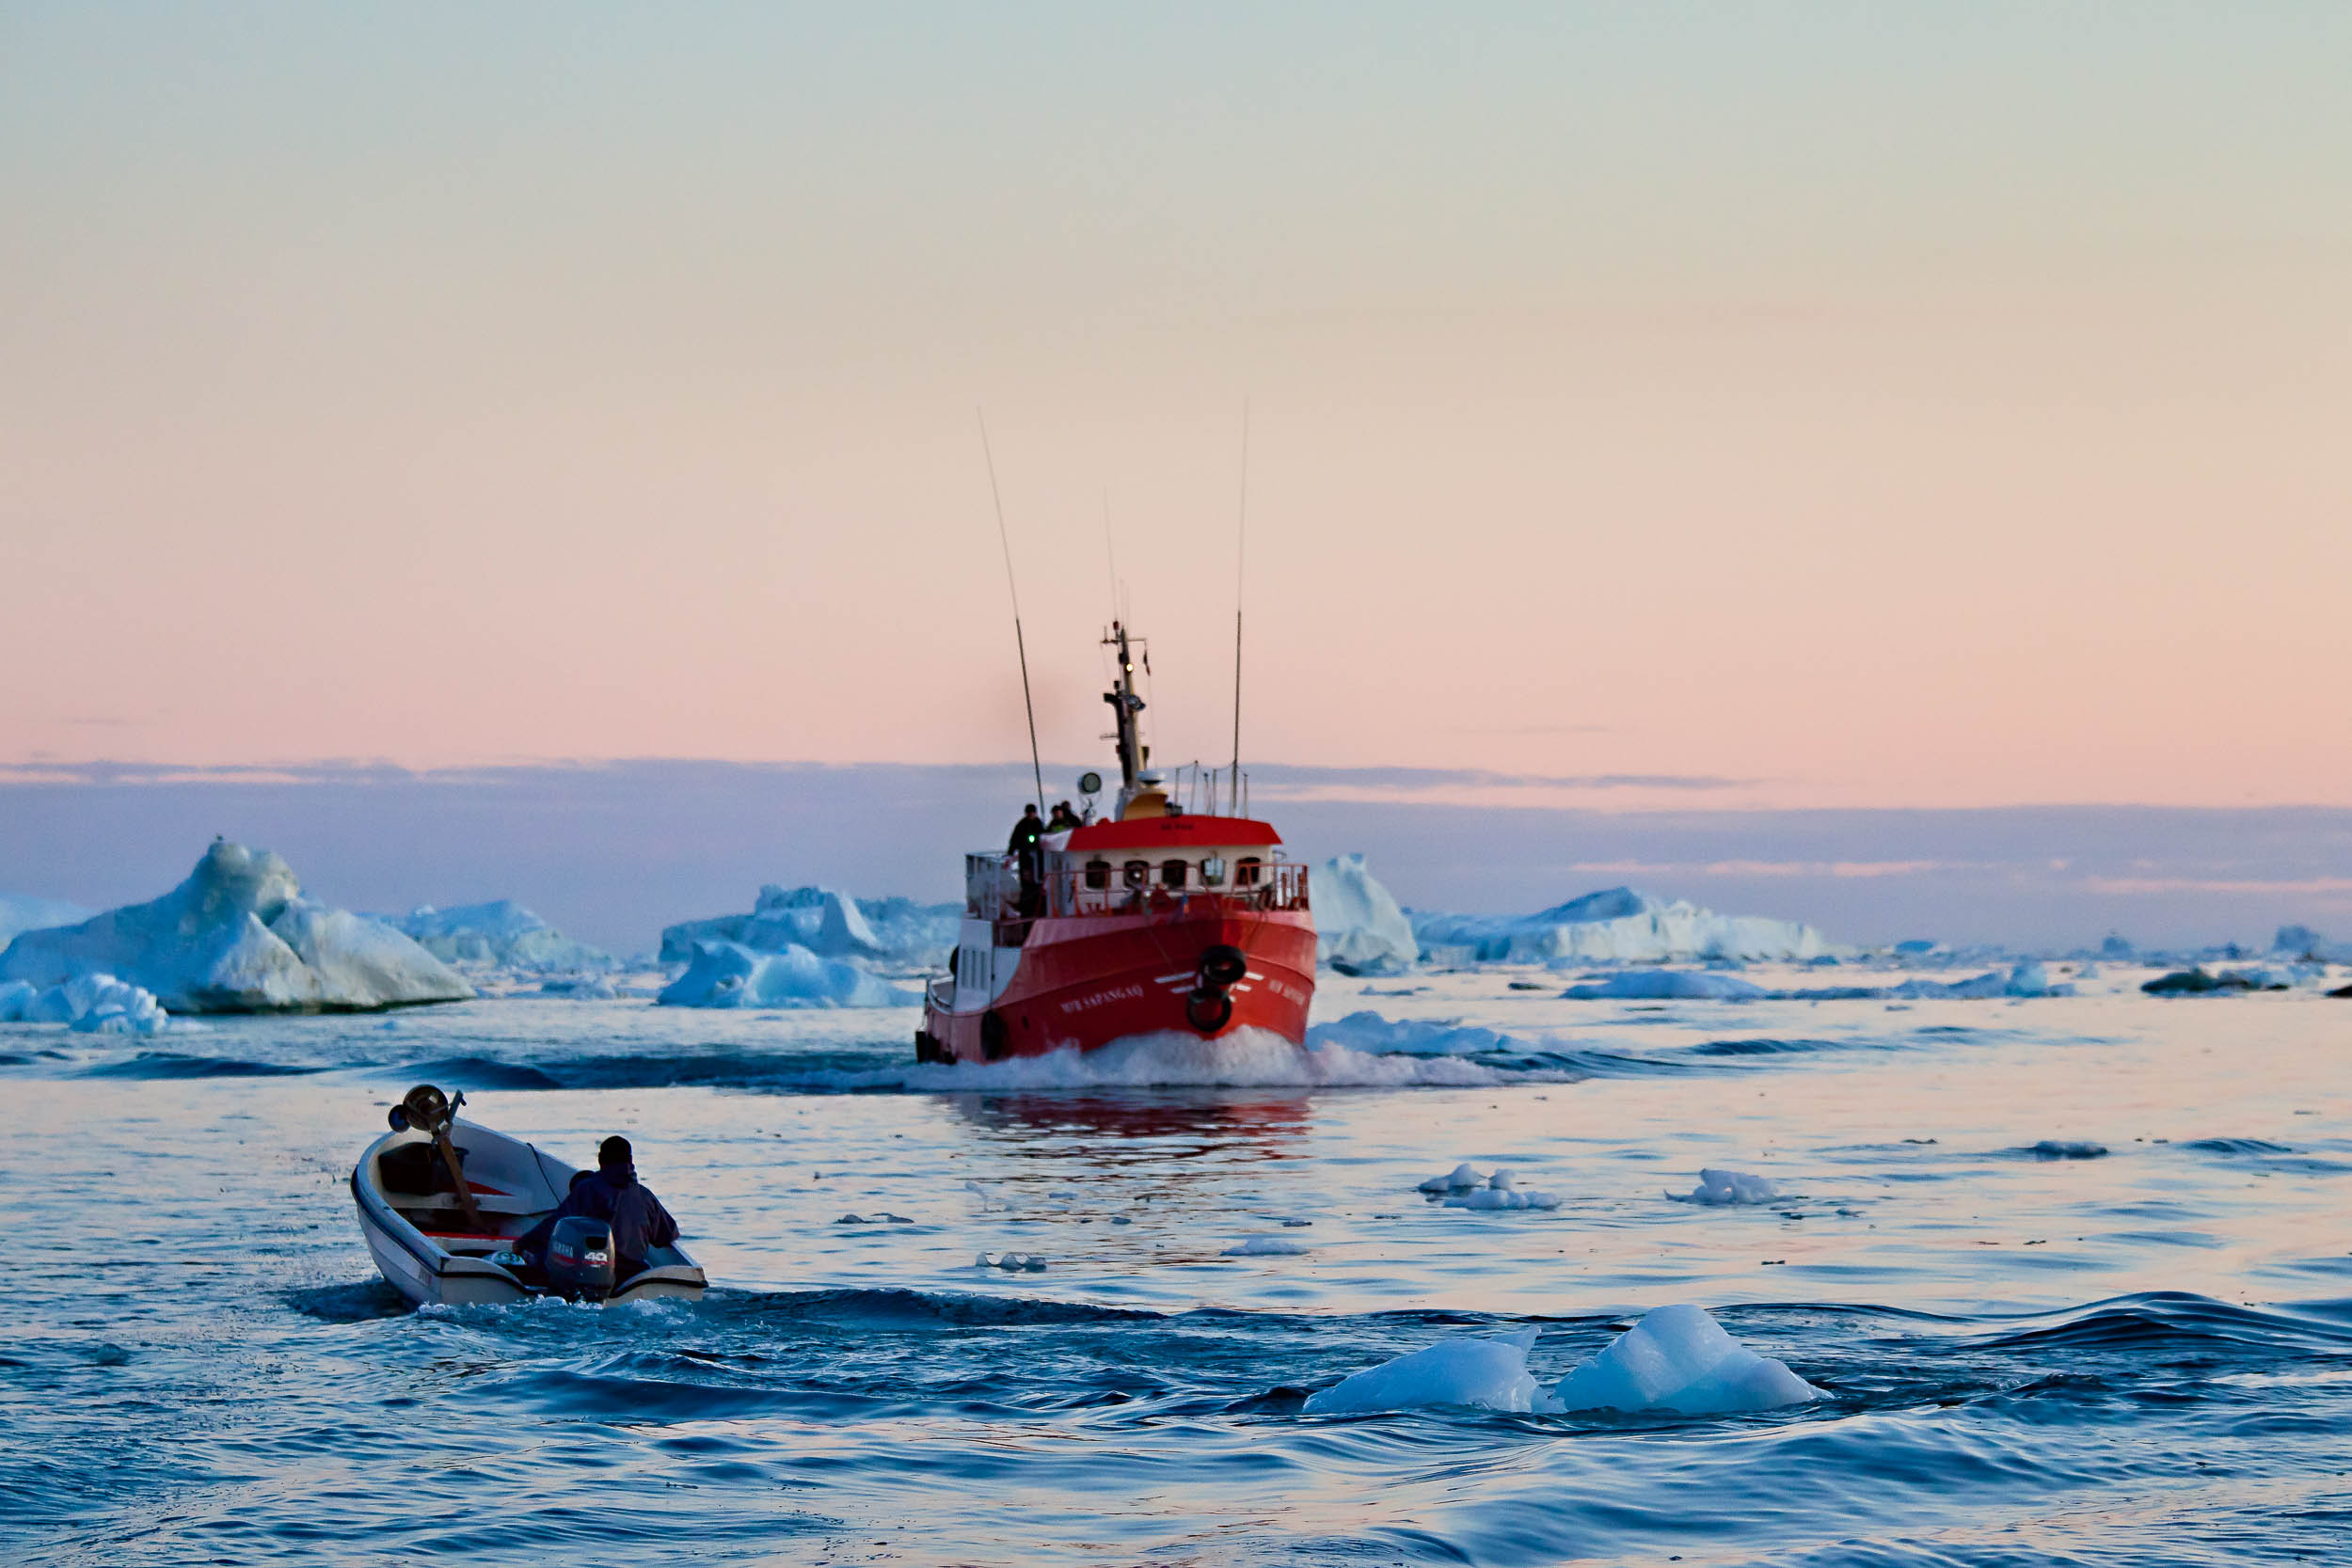 A l   one fisherman    heads out to sea, just as a larger vessel returns,    Disko Bay, Greenland   .